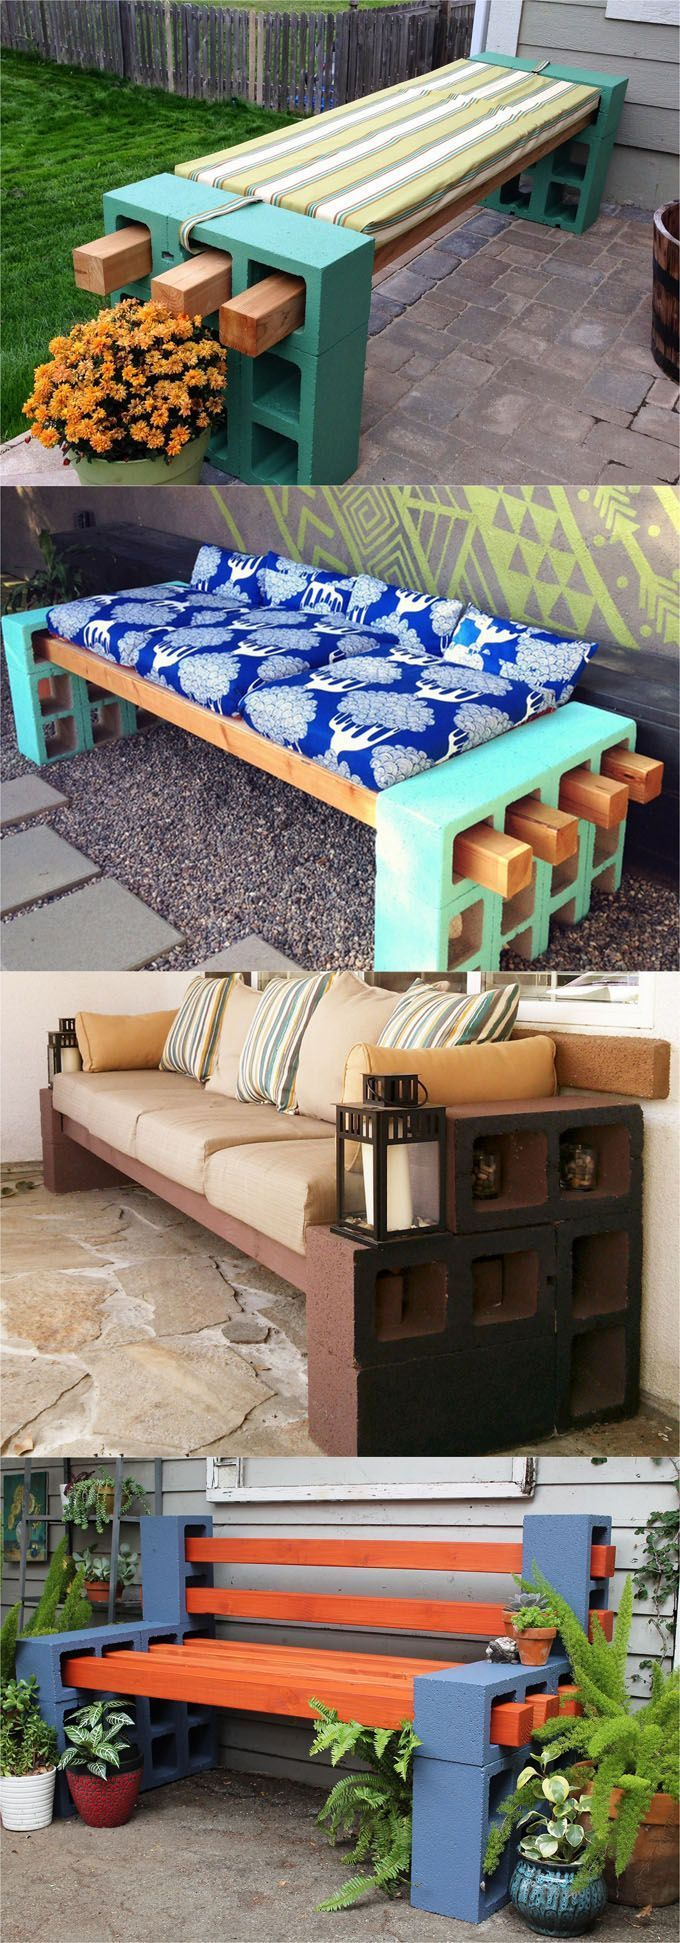 21 Gorgeous Easy DIY Benches ( Beginner Friendly Tutorials for Indoors & Outdoors!) #diyfurniture